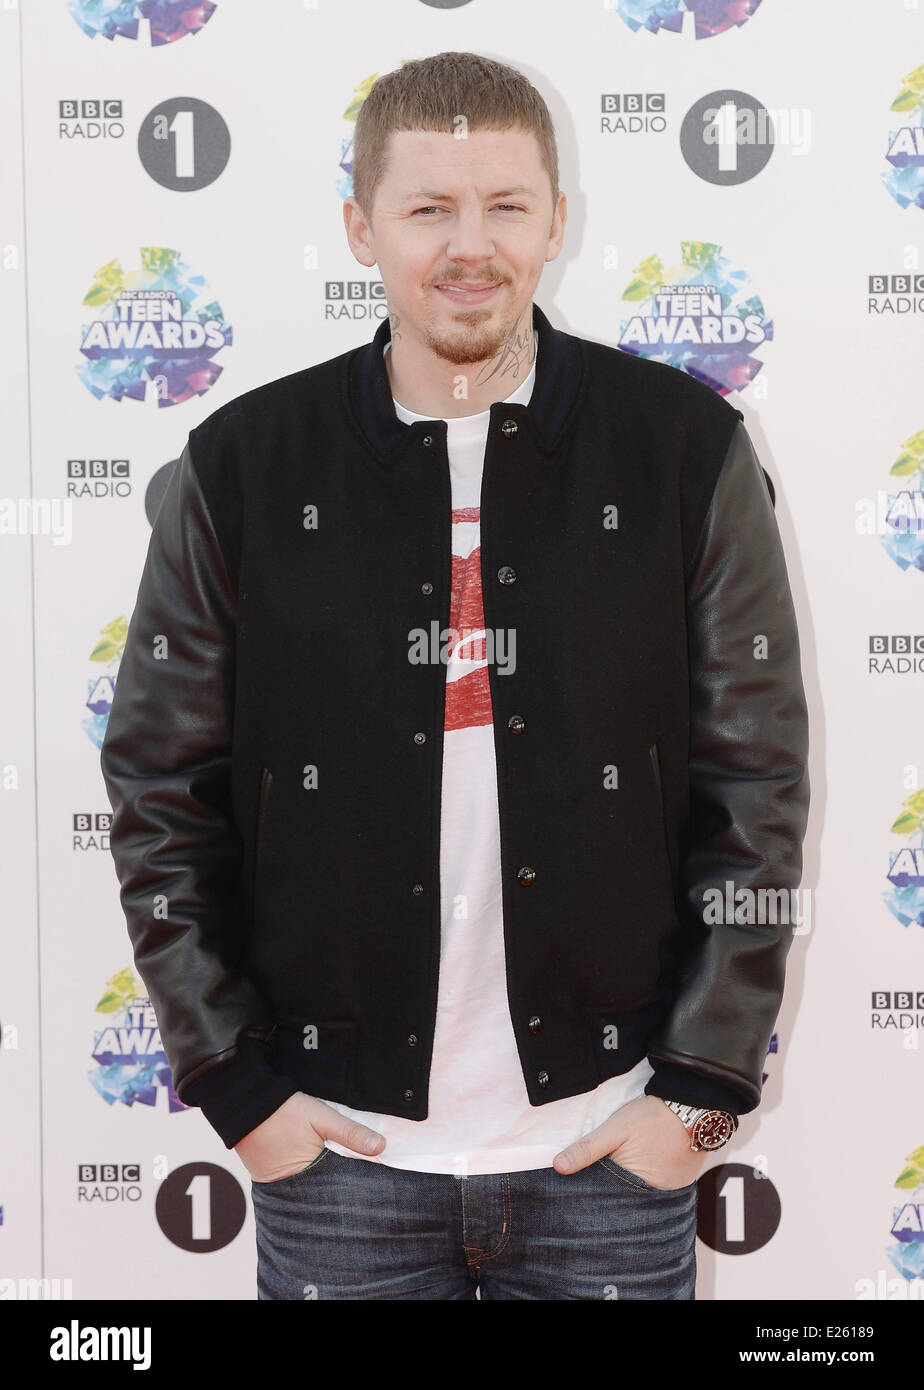 BBC Radio 1's Teen Awards held at Wembley Arena - Arrivals Featuring:  Professor Green Where: London, United Kingdom When: 03 Nov 2013